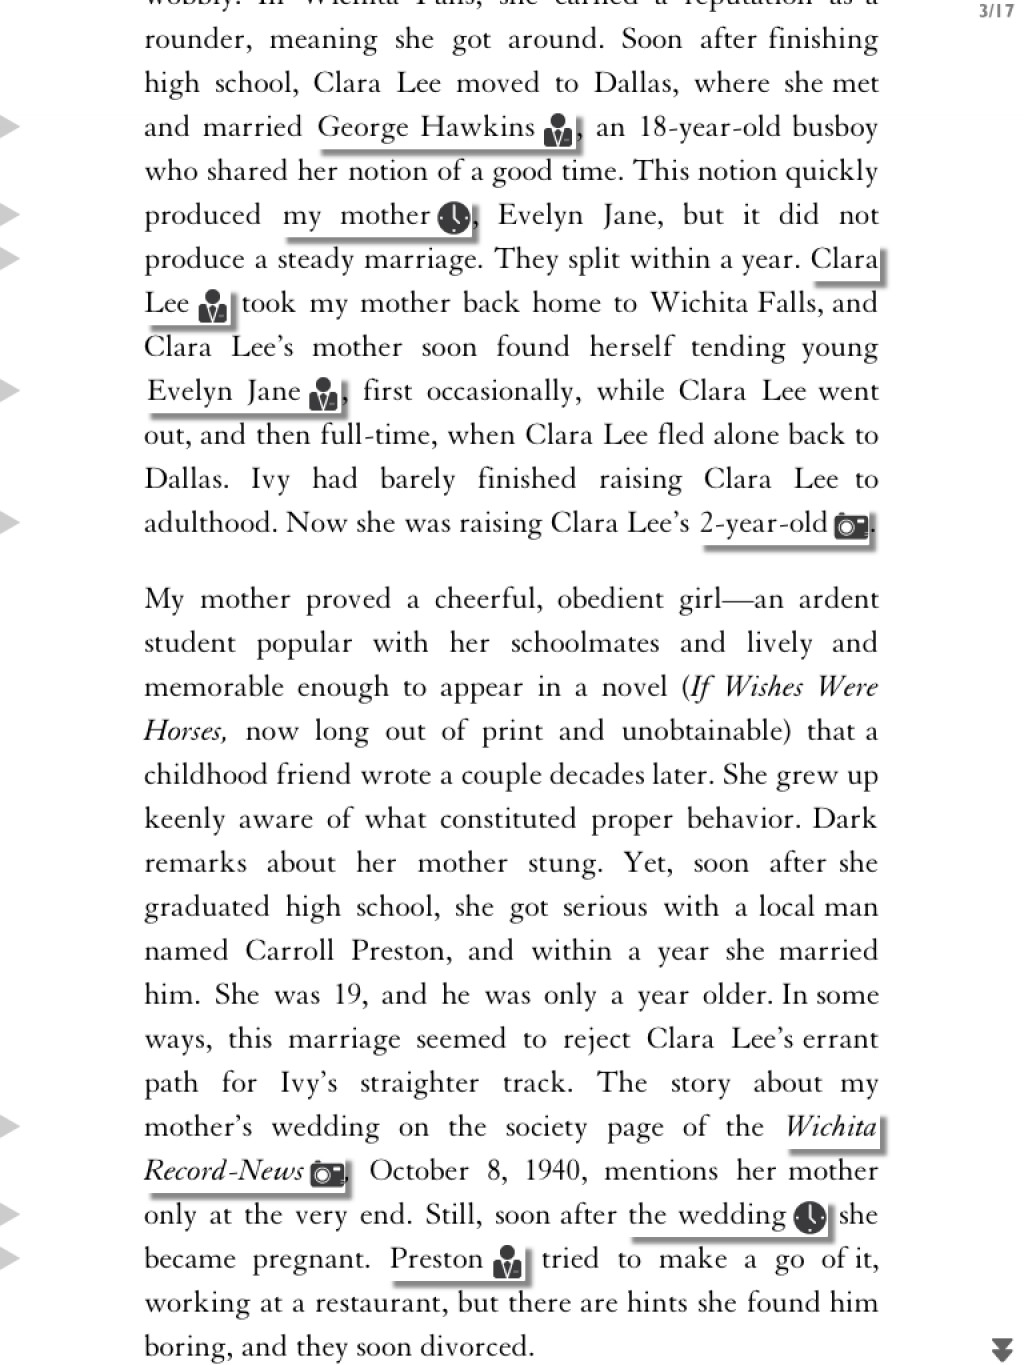 011 Essay On My Father Hero Fathermy About L An Fascinating Heroine Teacher 500 Words A Narrative Large